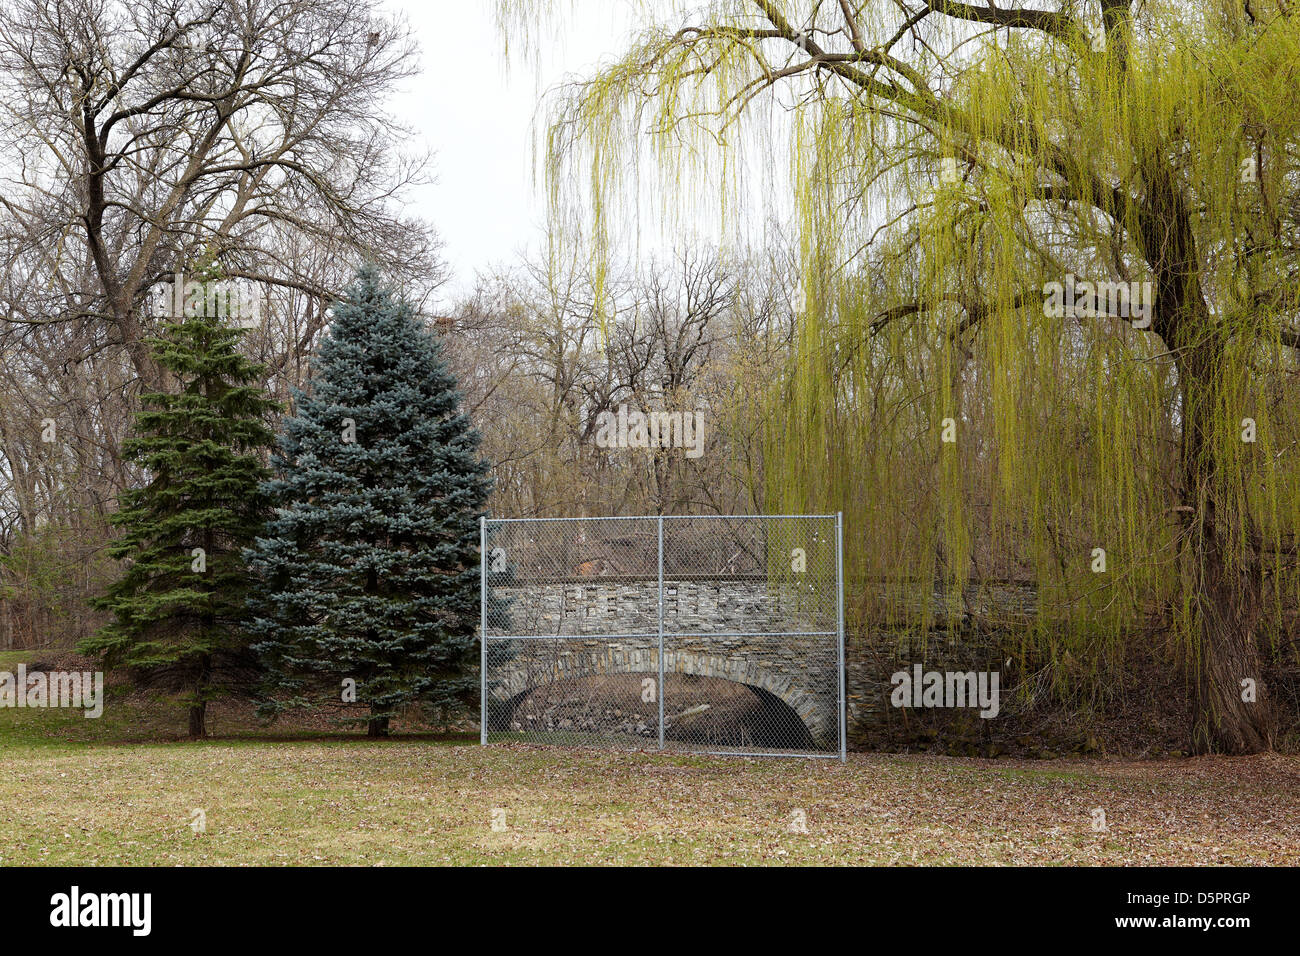 Chain link fence framing a bucolic Spring landscape - Stock Image